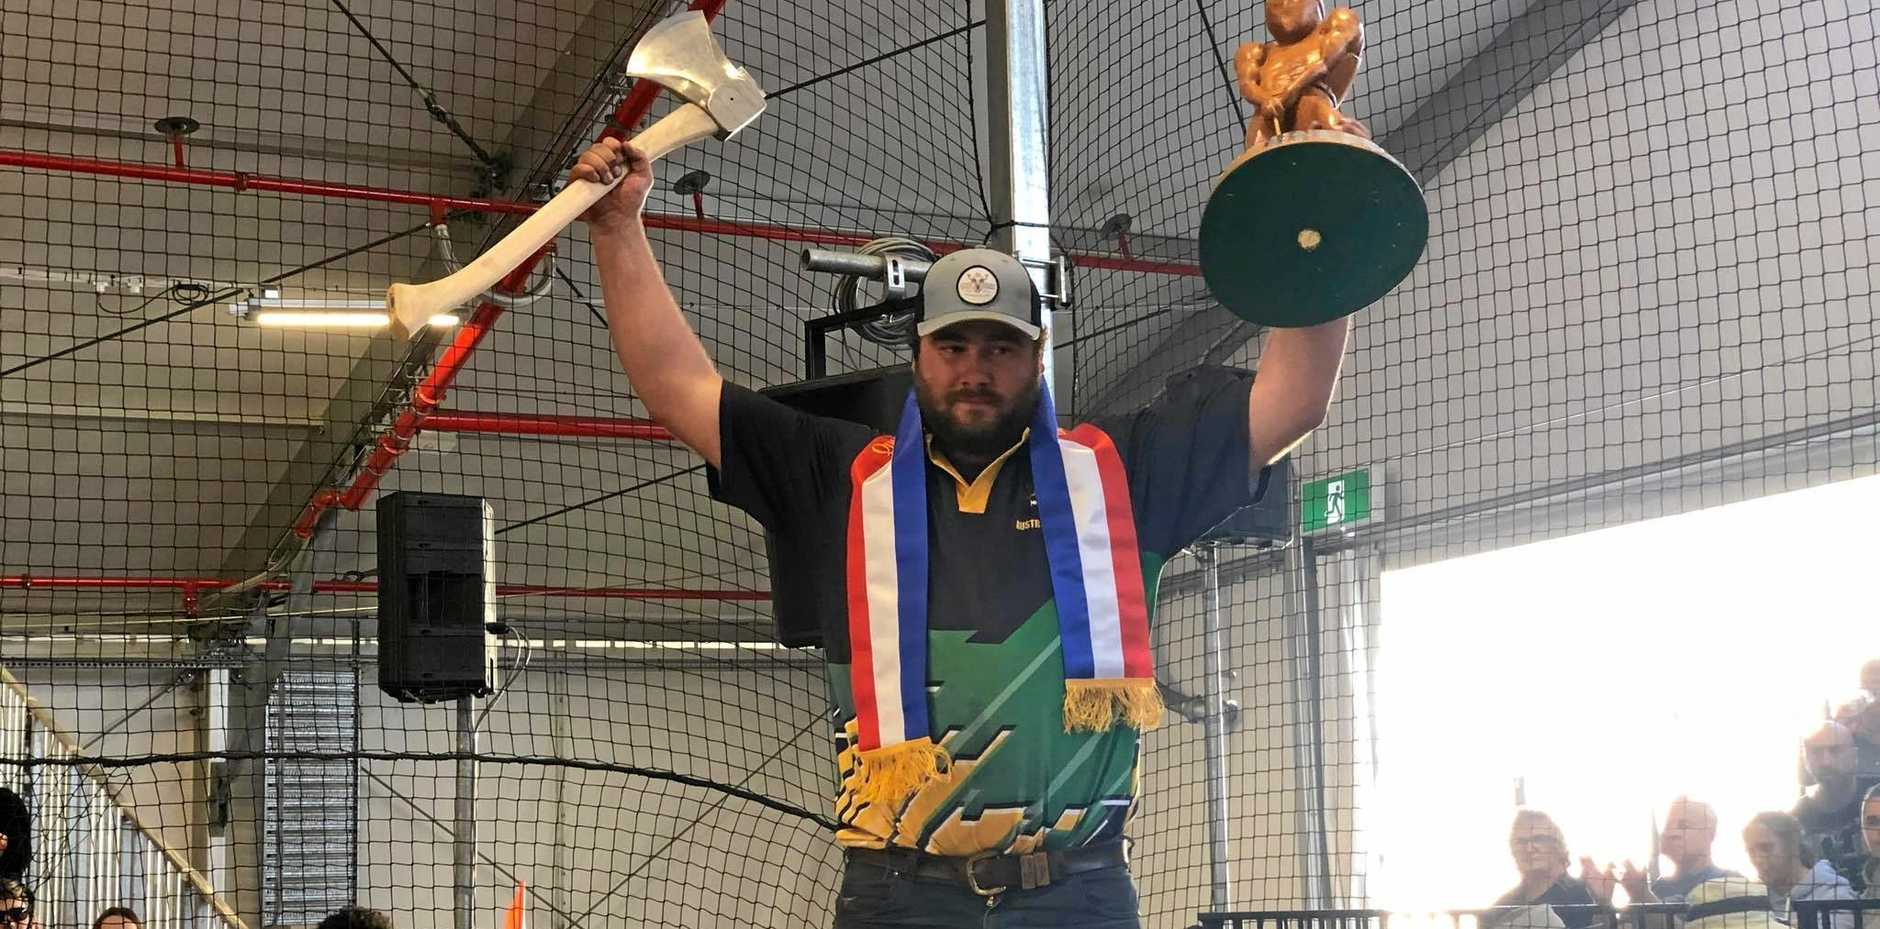 For the third year in a row Blackbutt local Mitchell Argent has been awarded Queensland Axeman of the Year trophy at the EKKA after earning a total of 66.5 points.